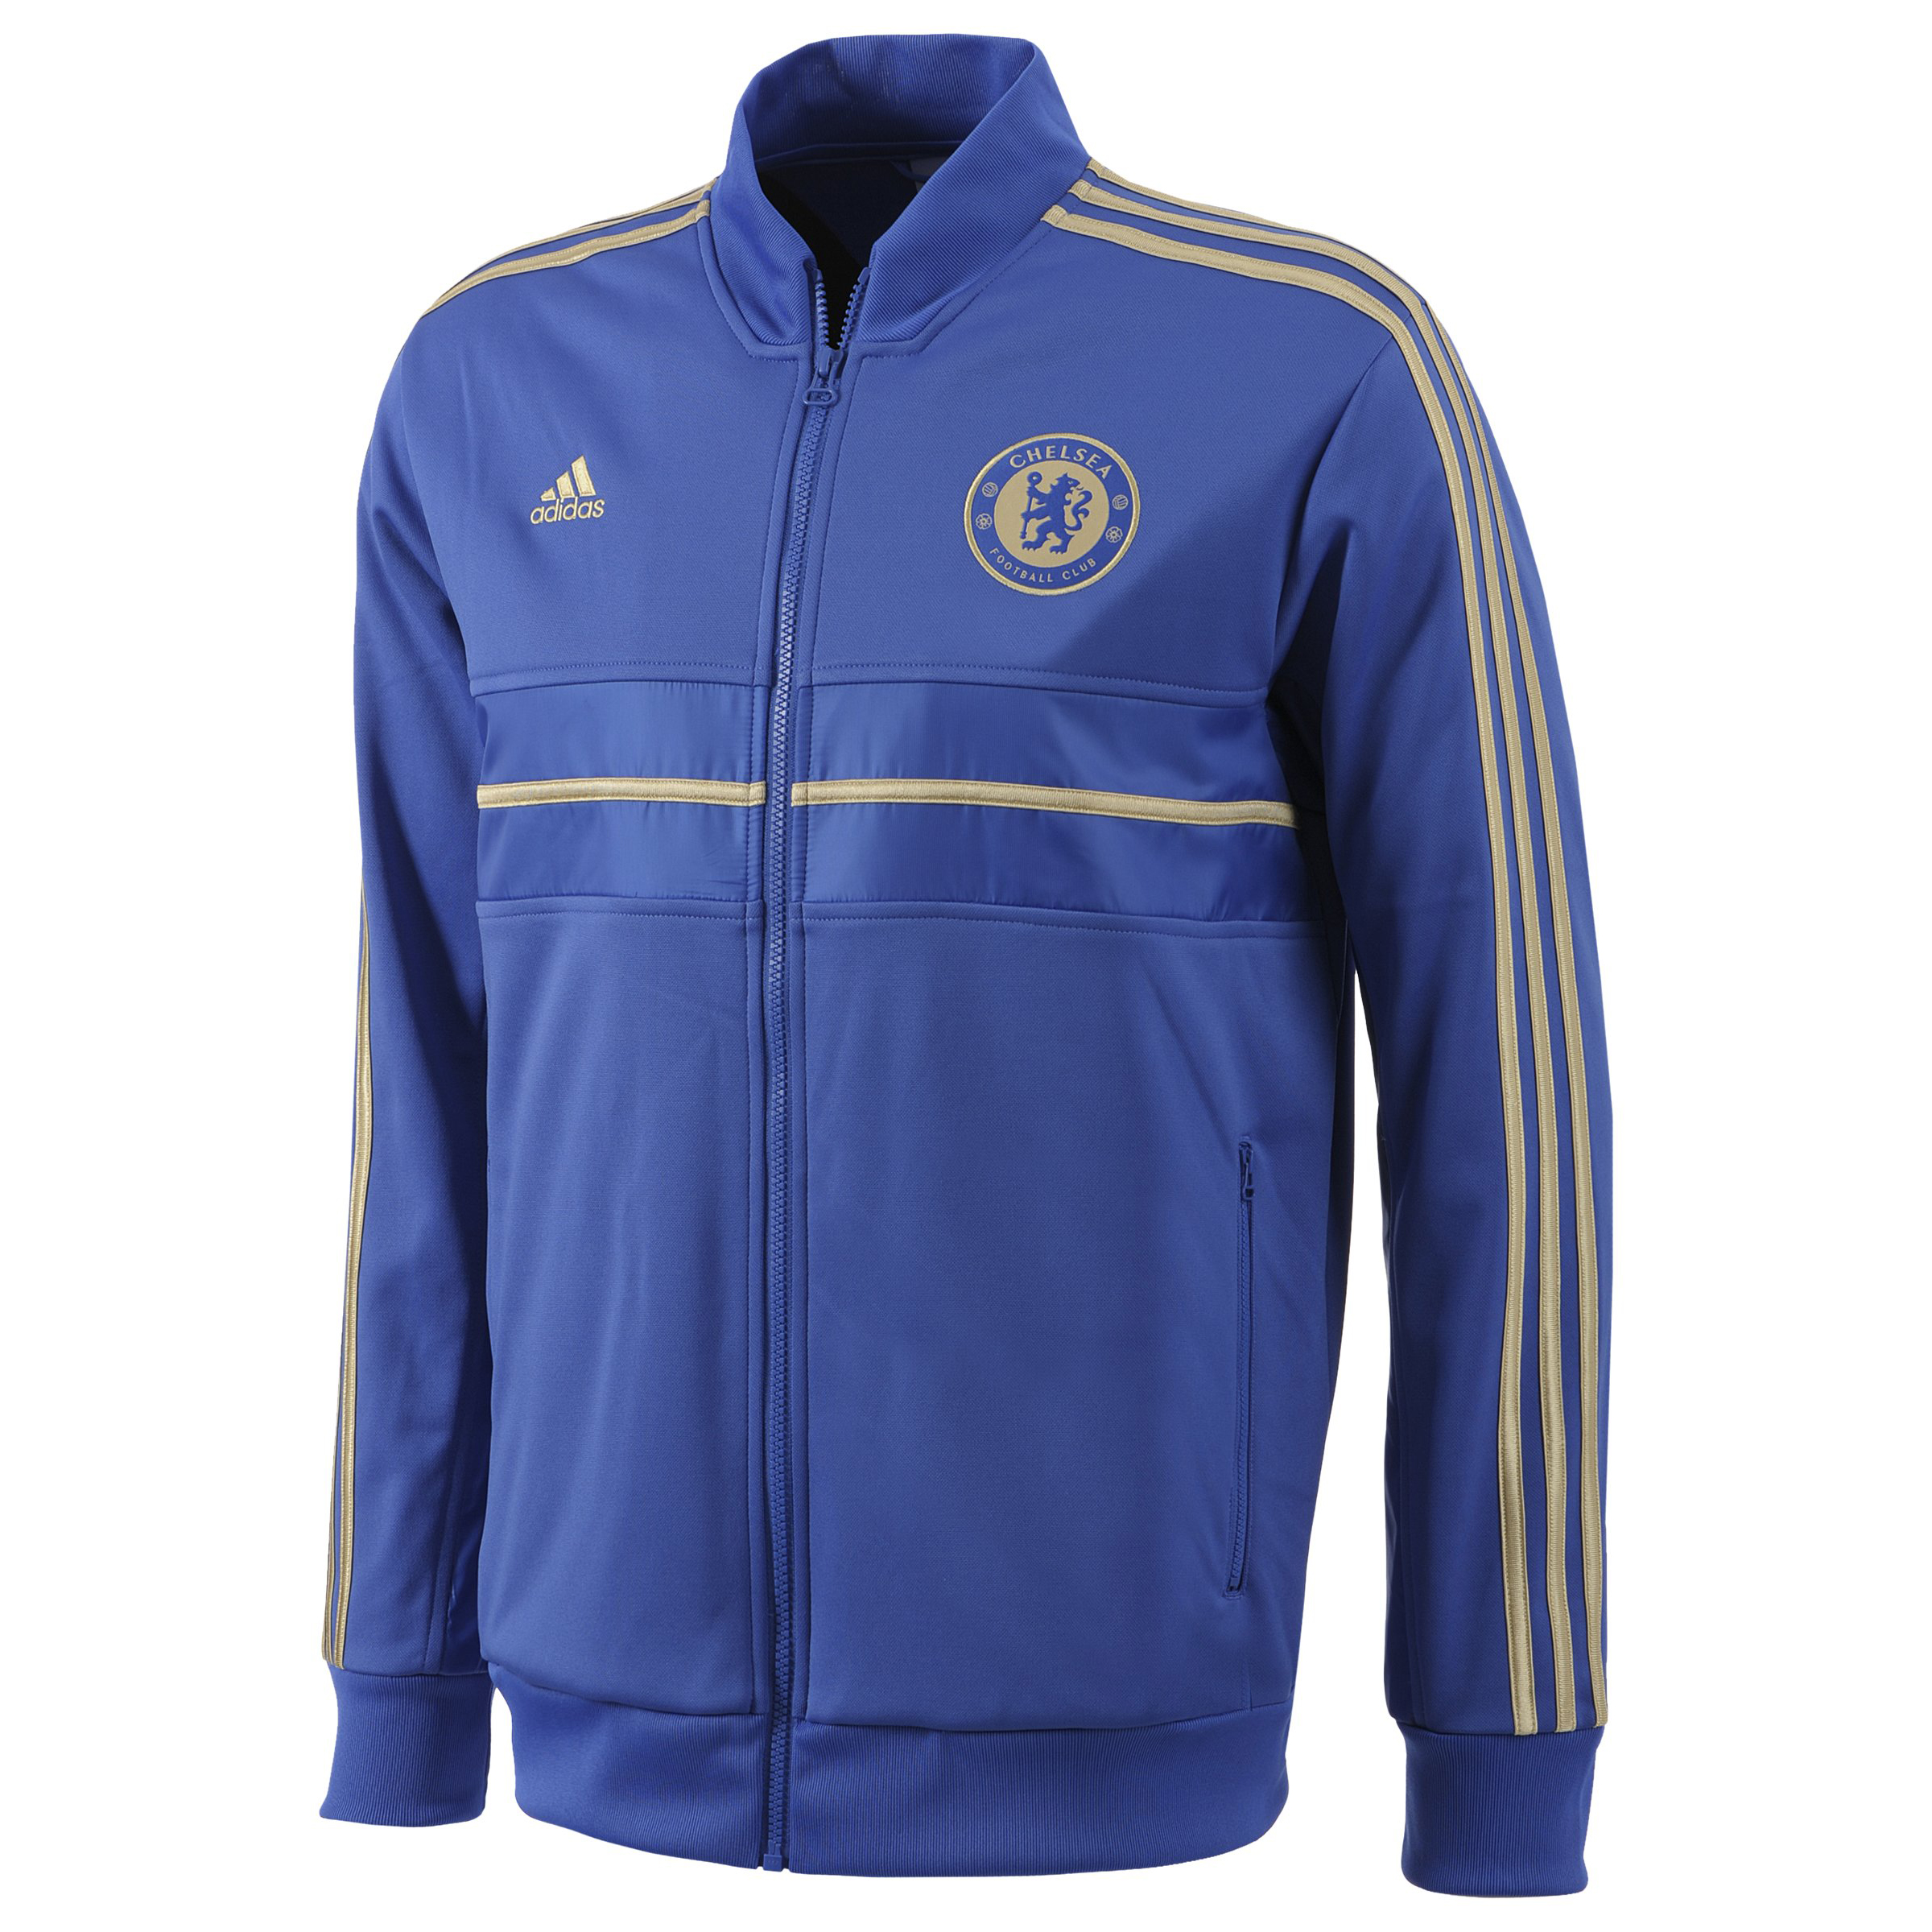 Chelsea Anthem Jacket - Reflex Blue/Light Football Gold